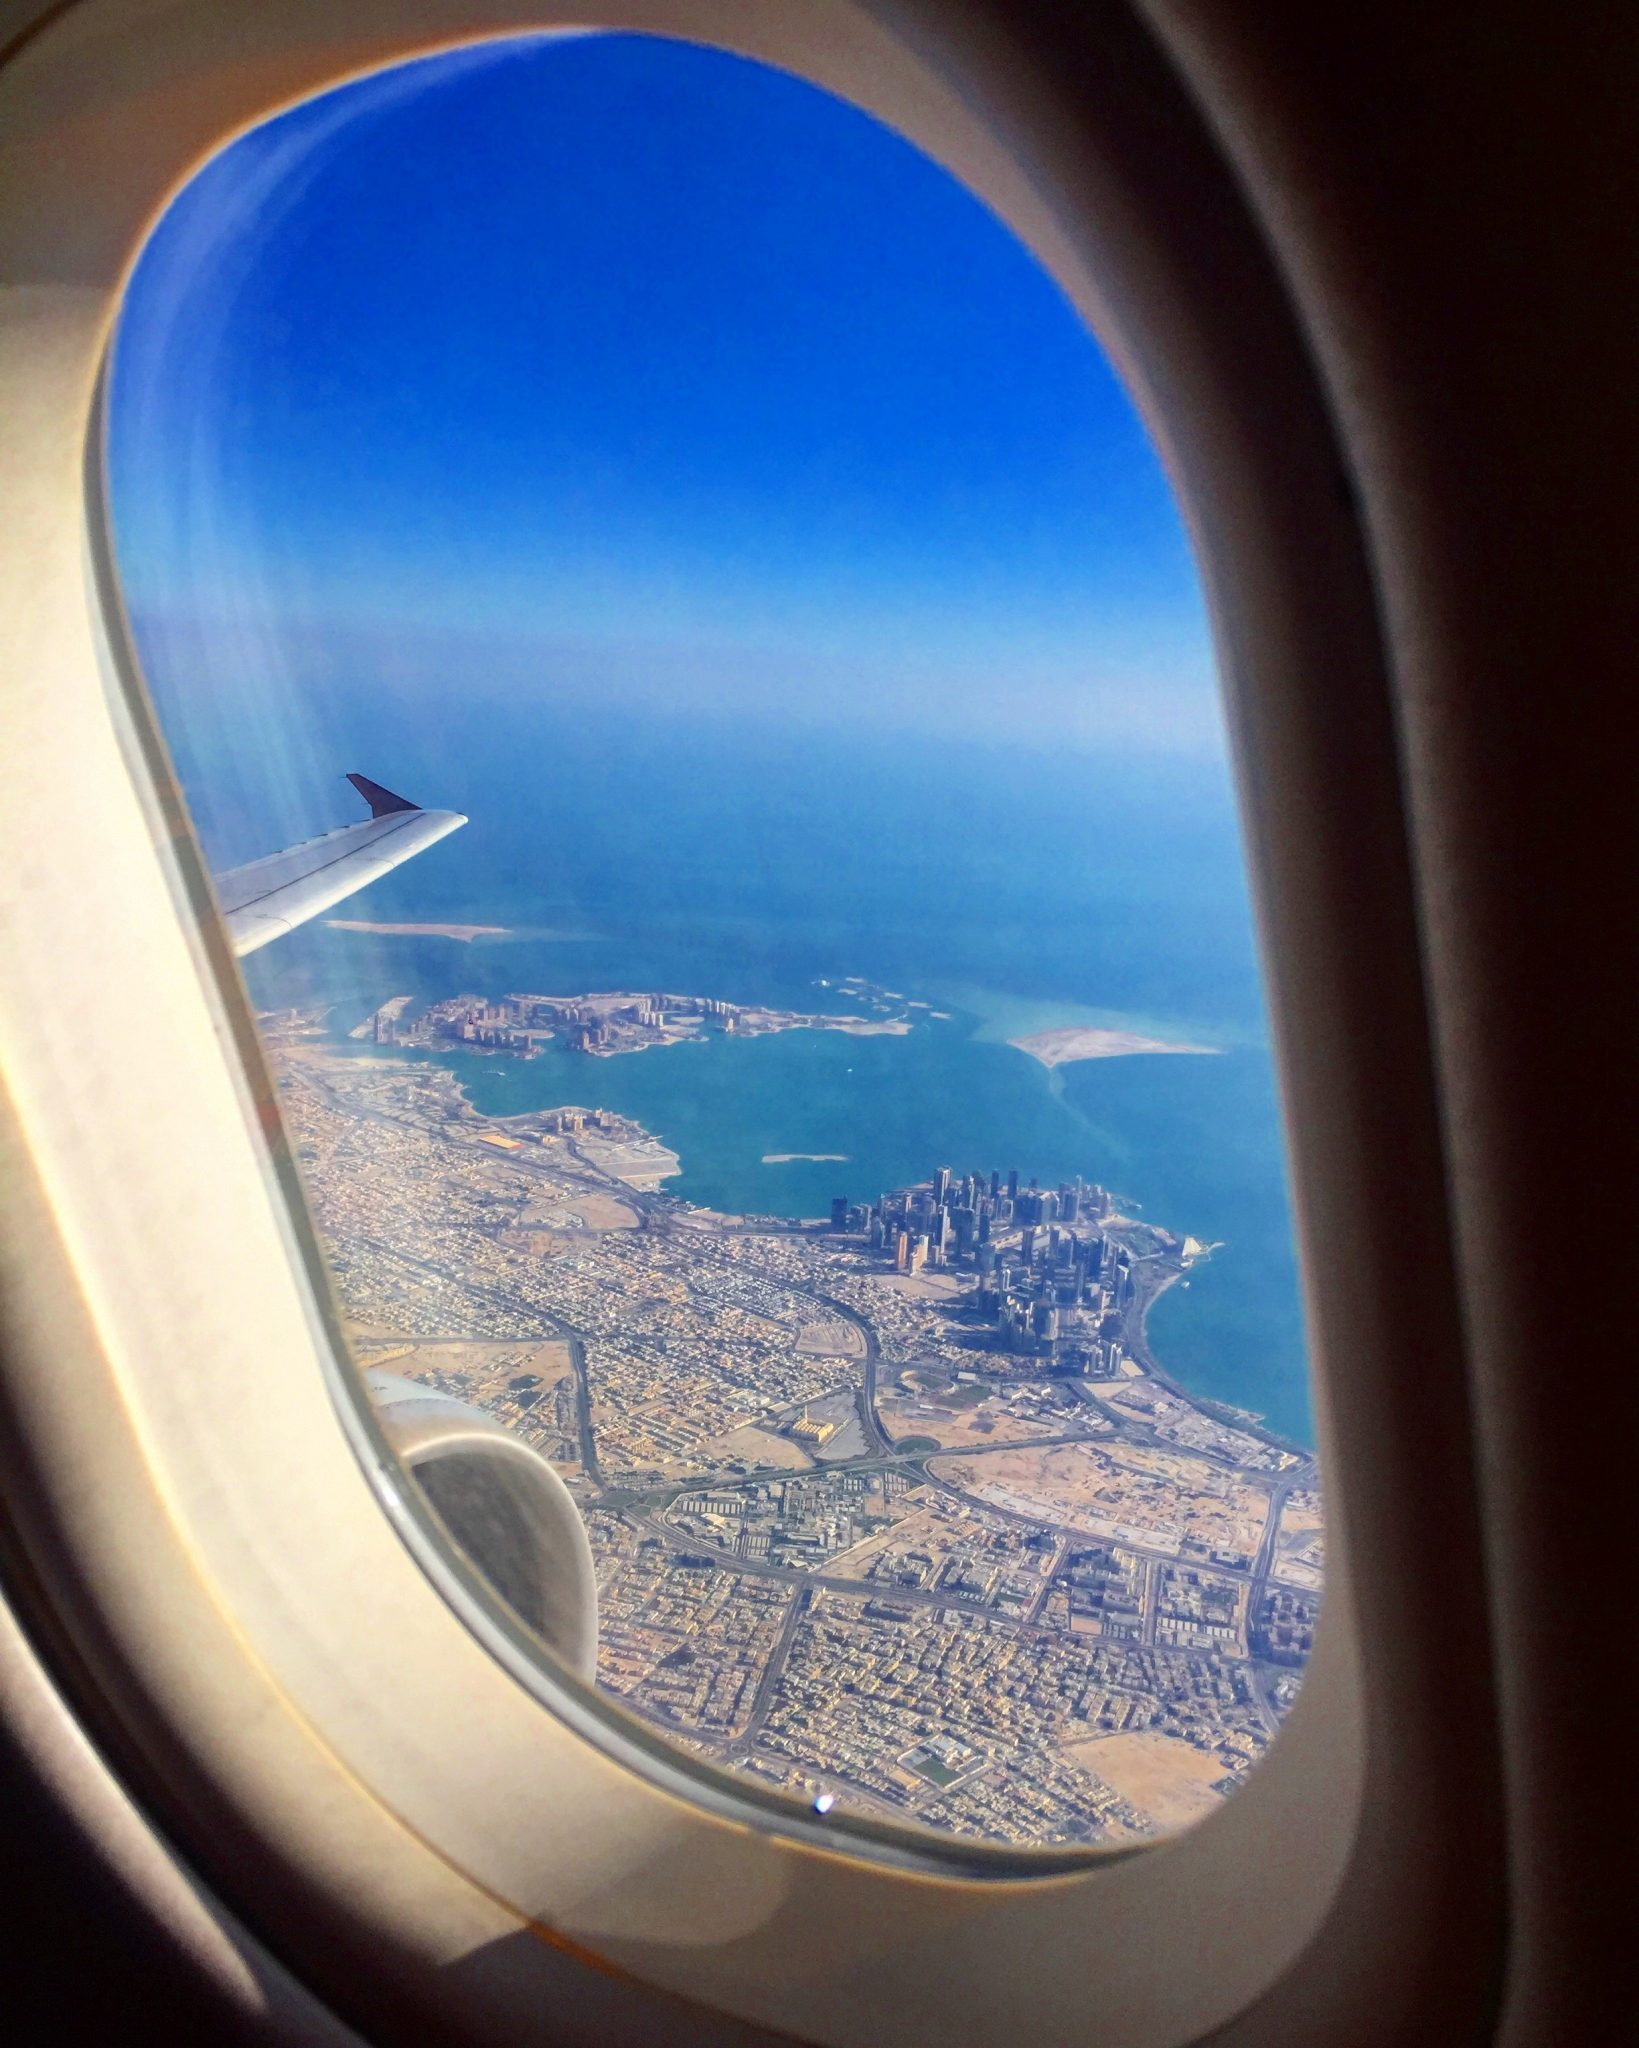 A picture from my window of Doha city after take off